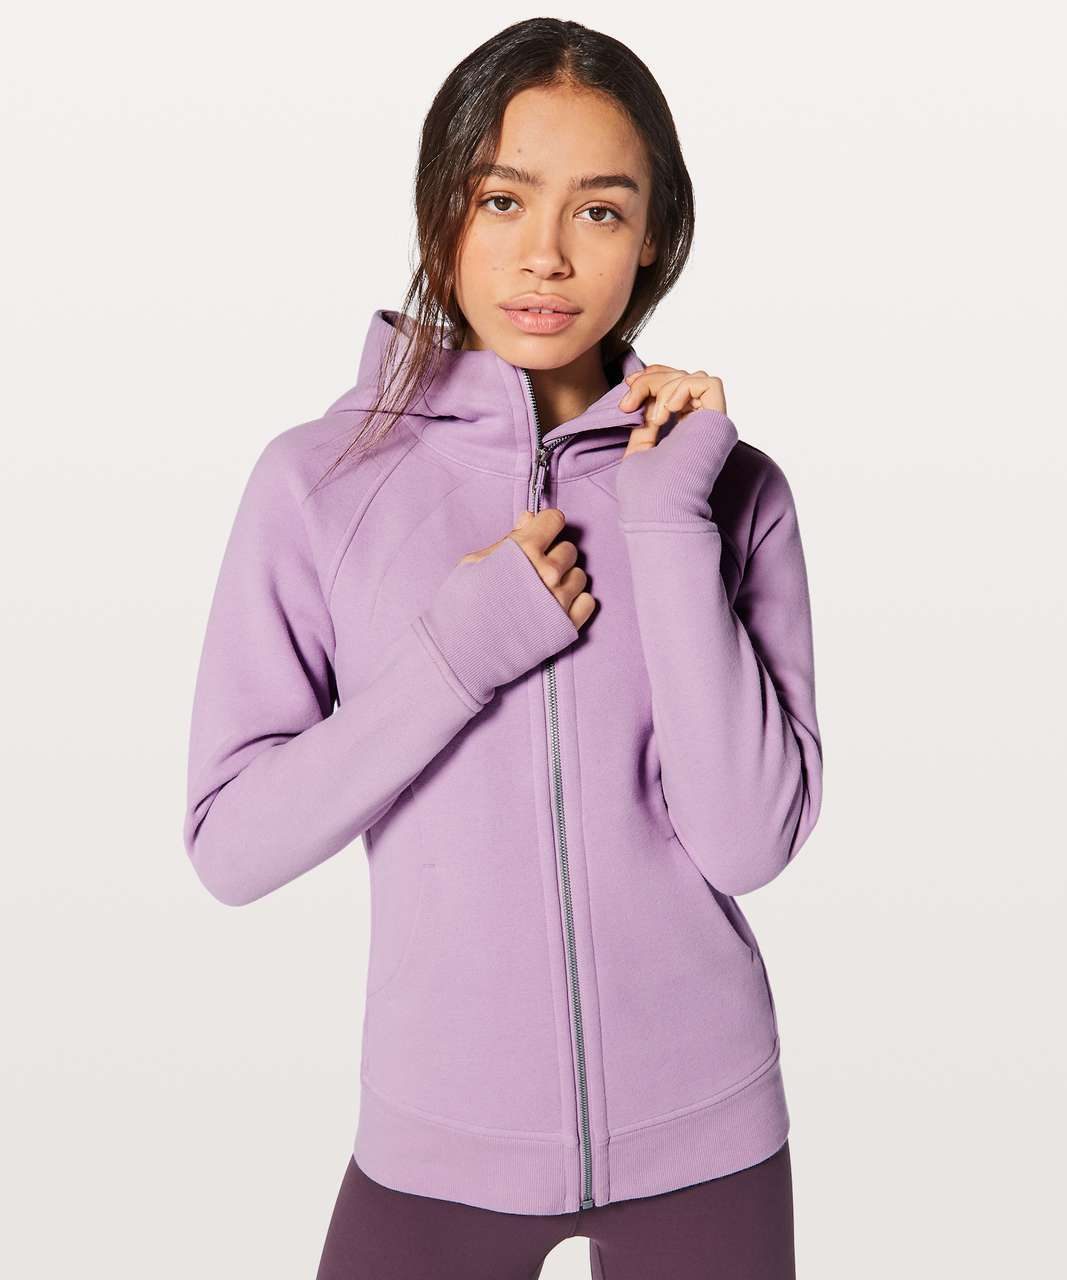 Lululemon Scuba Hoodie *Light Cotton Fleece - Lilac Quartz